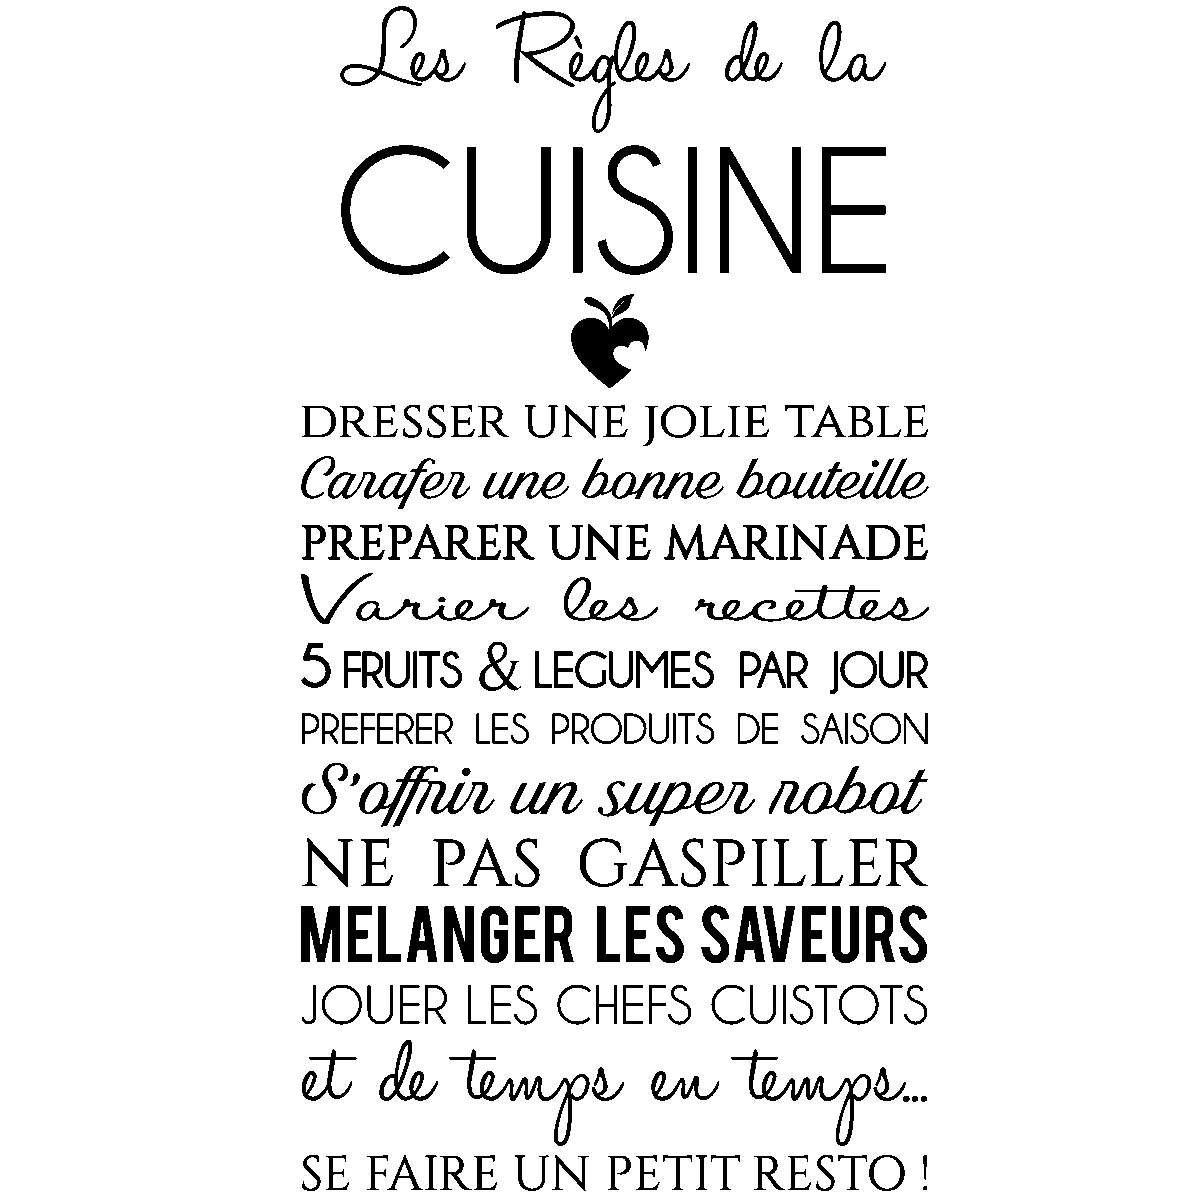 Stickers recette cuisine fashion designs for Proverbe cuisine humour